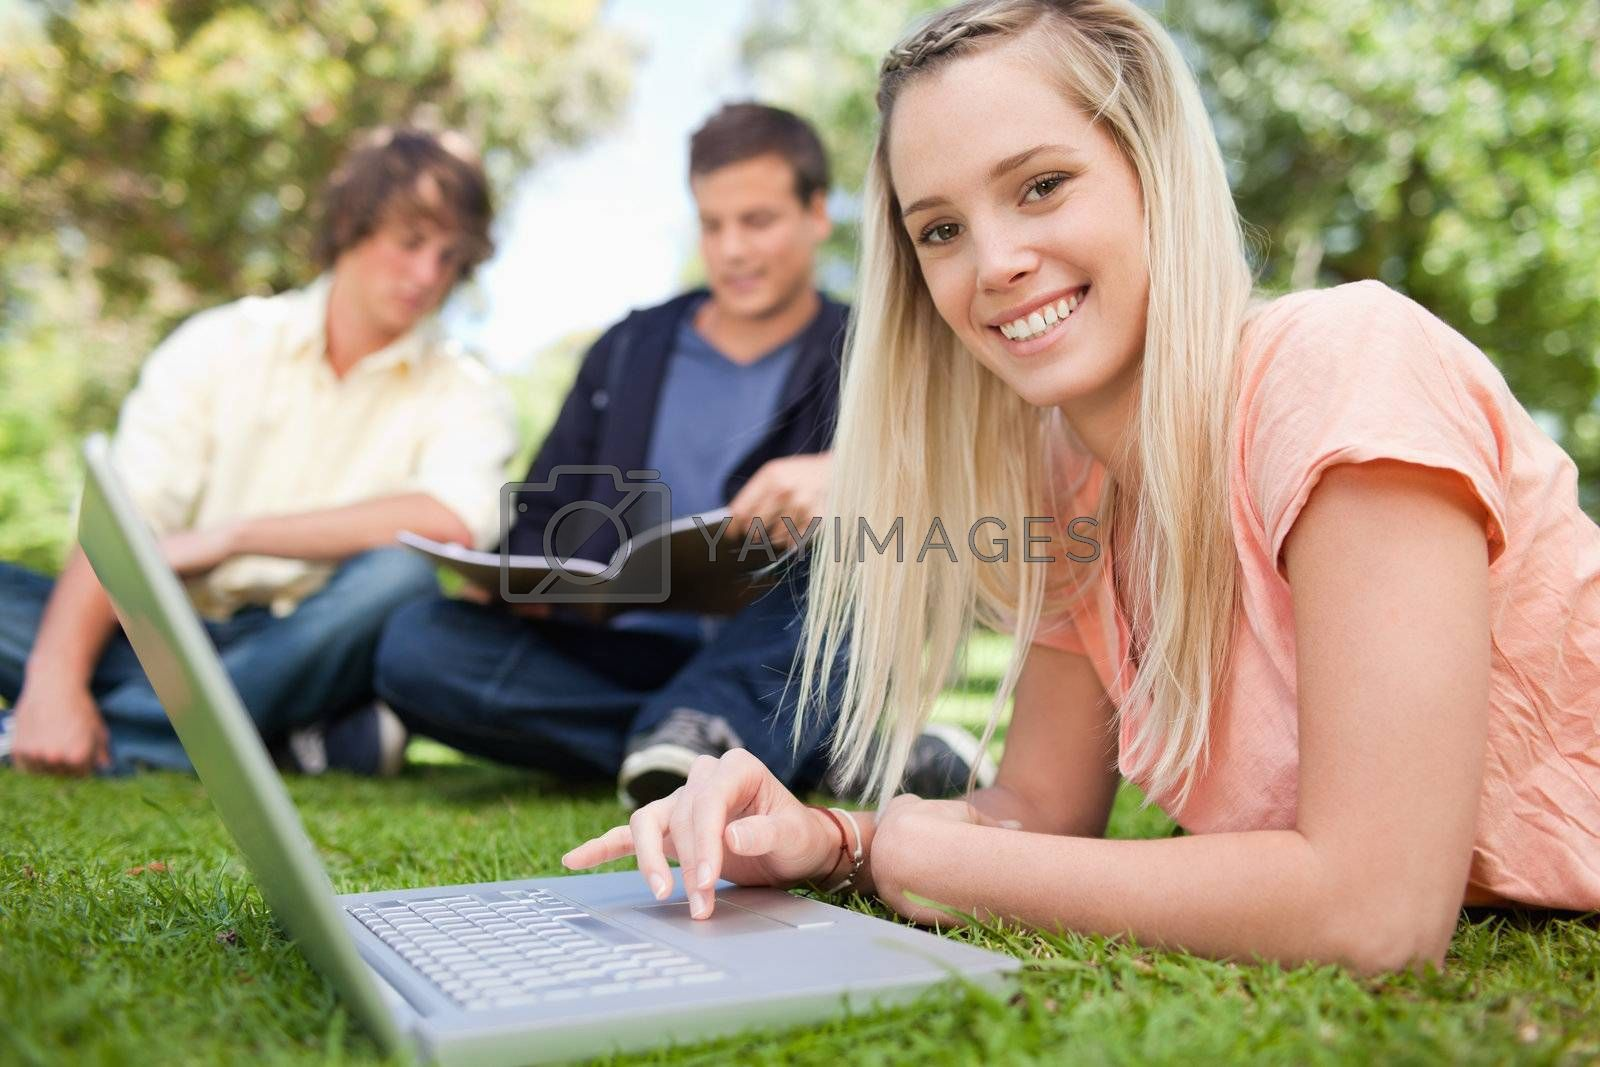 Portrait of a girl using a laptop while lying in a park with friends in background